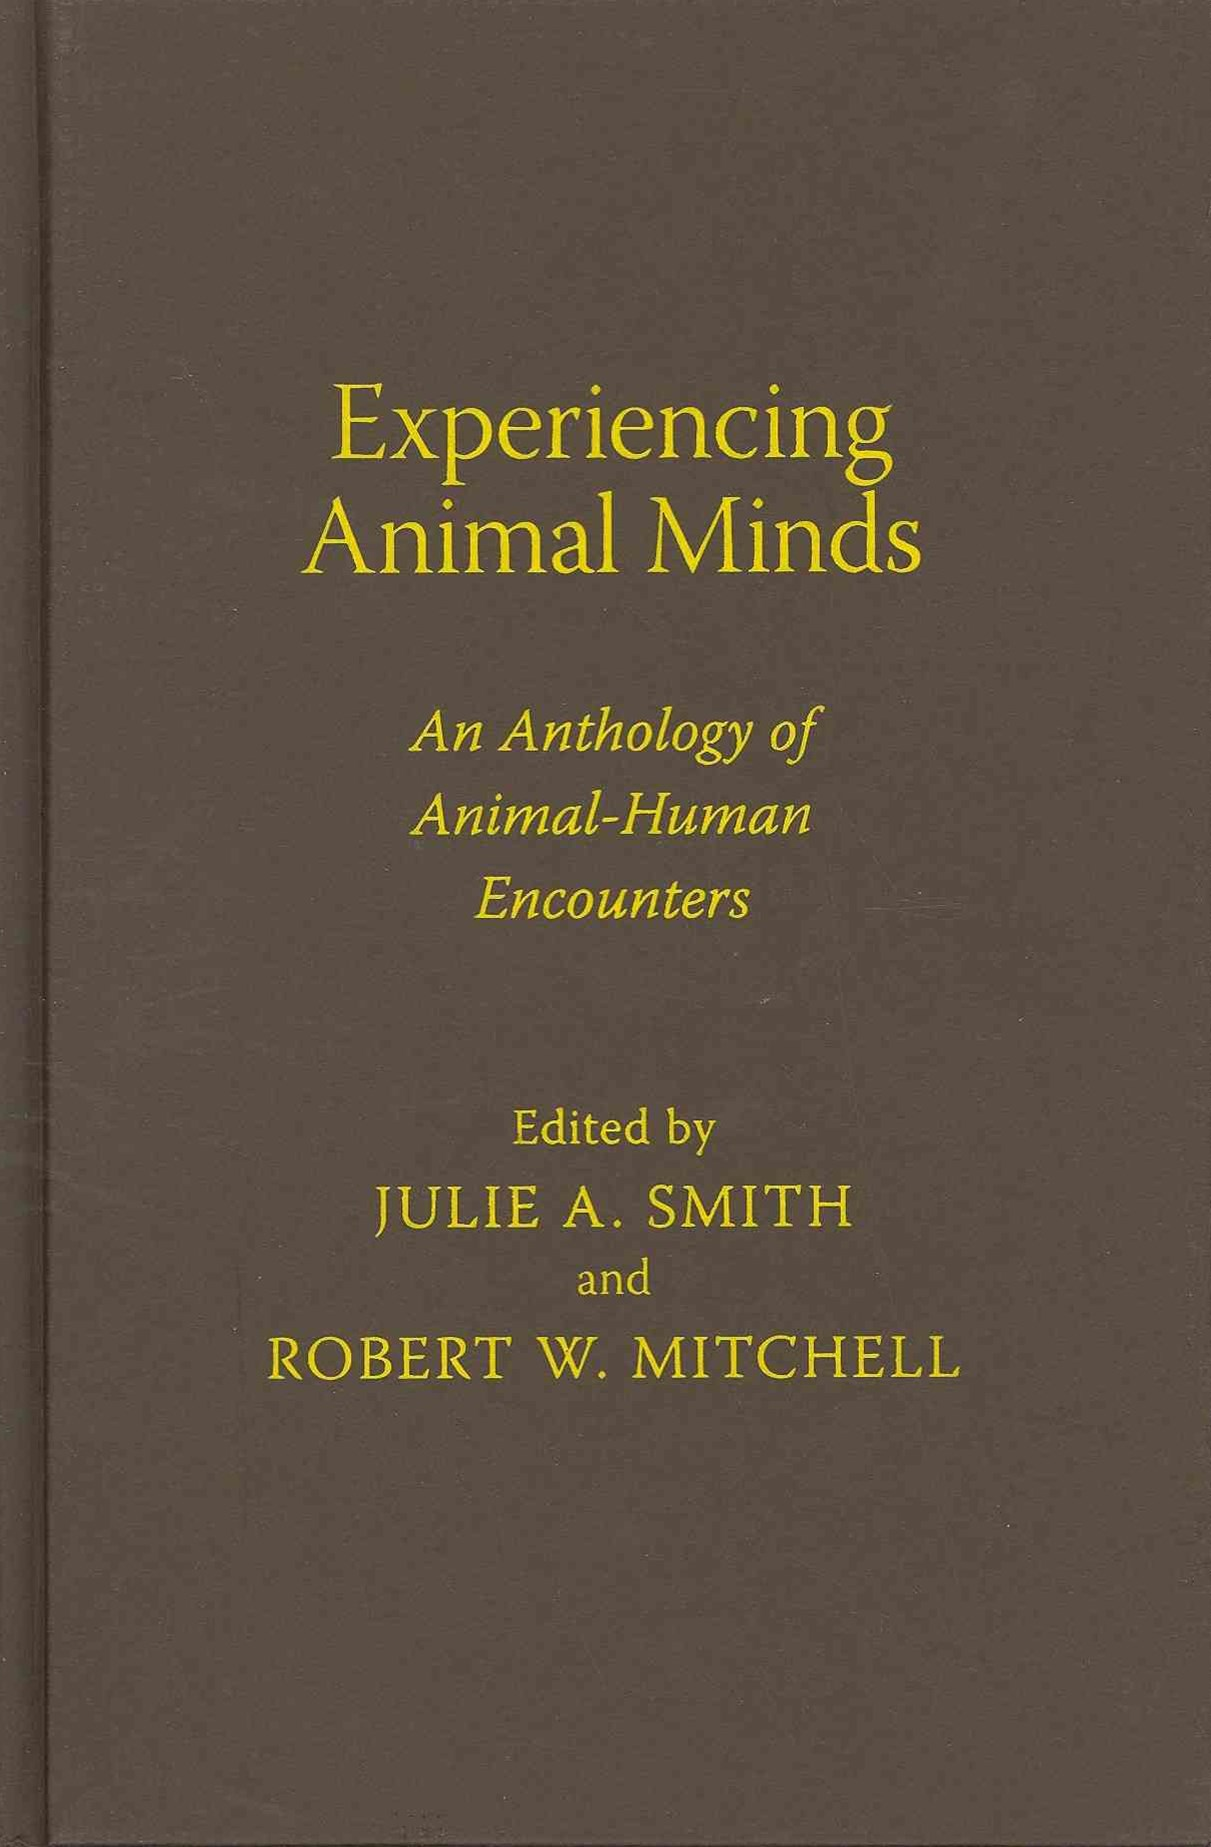 Experiencing Animal Minds